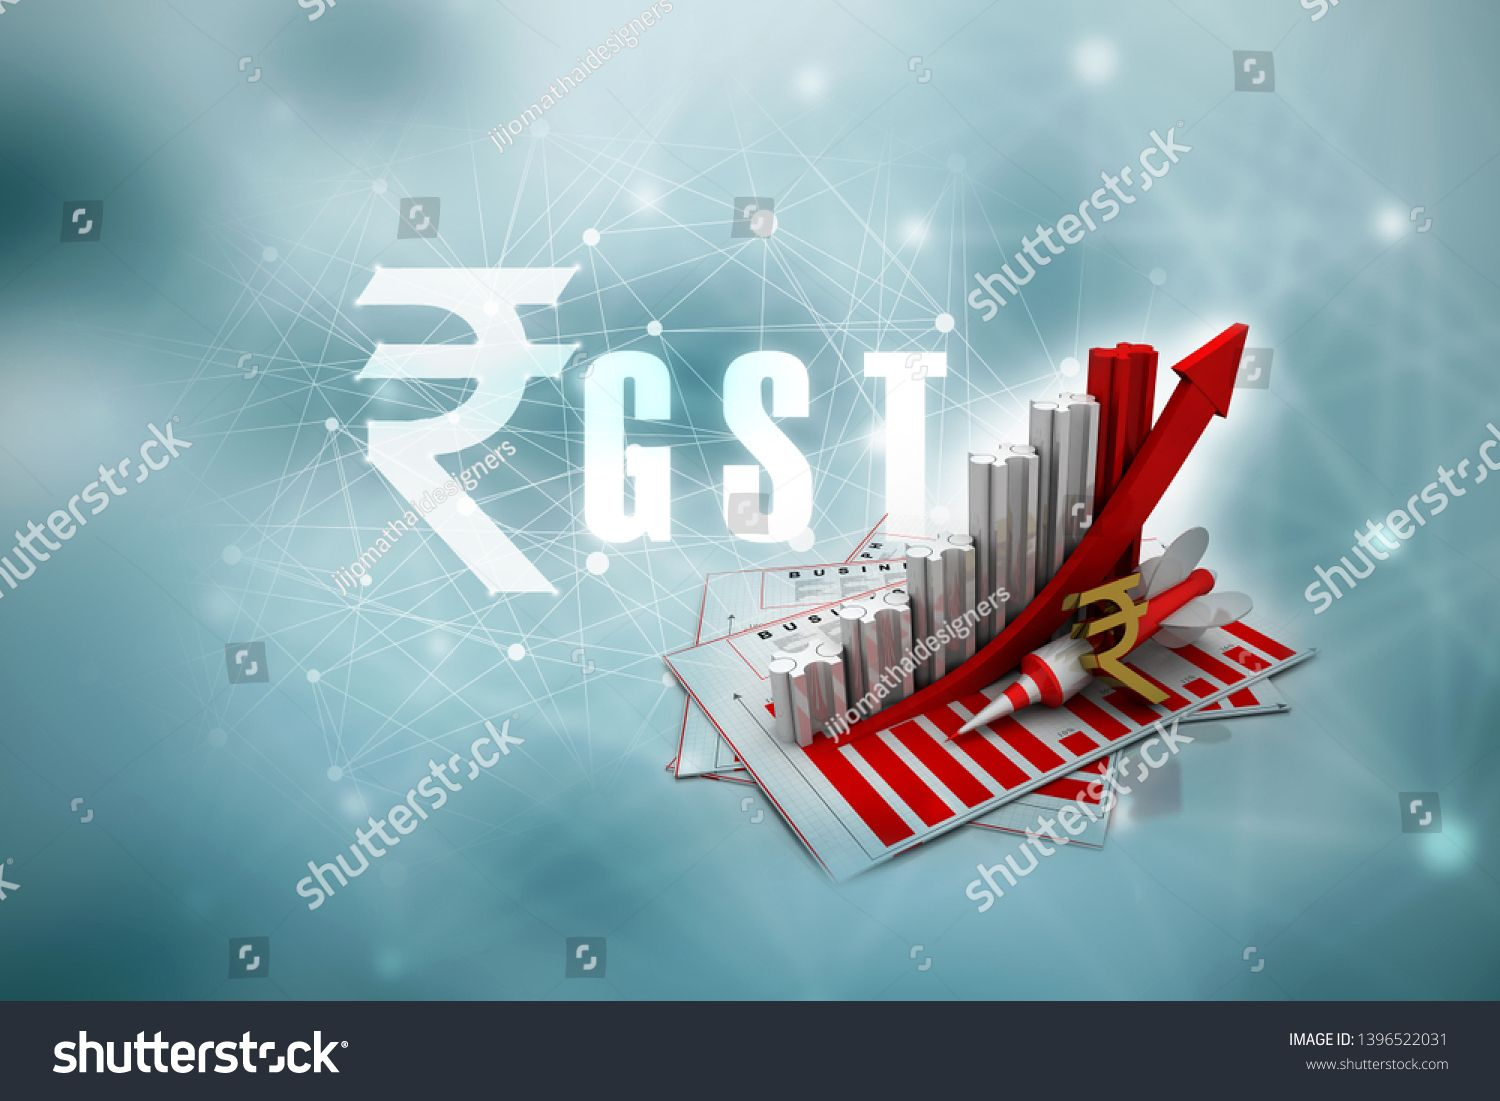 3d Rendering Stock Market Online Business Concept Business Graph With Indian Rupee Sign Spon Online Business Marketing Business Stock Images Online Marketing